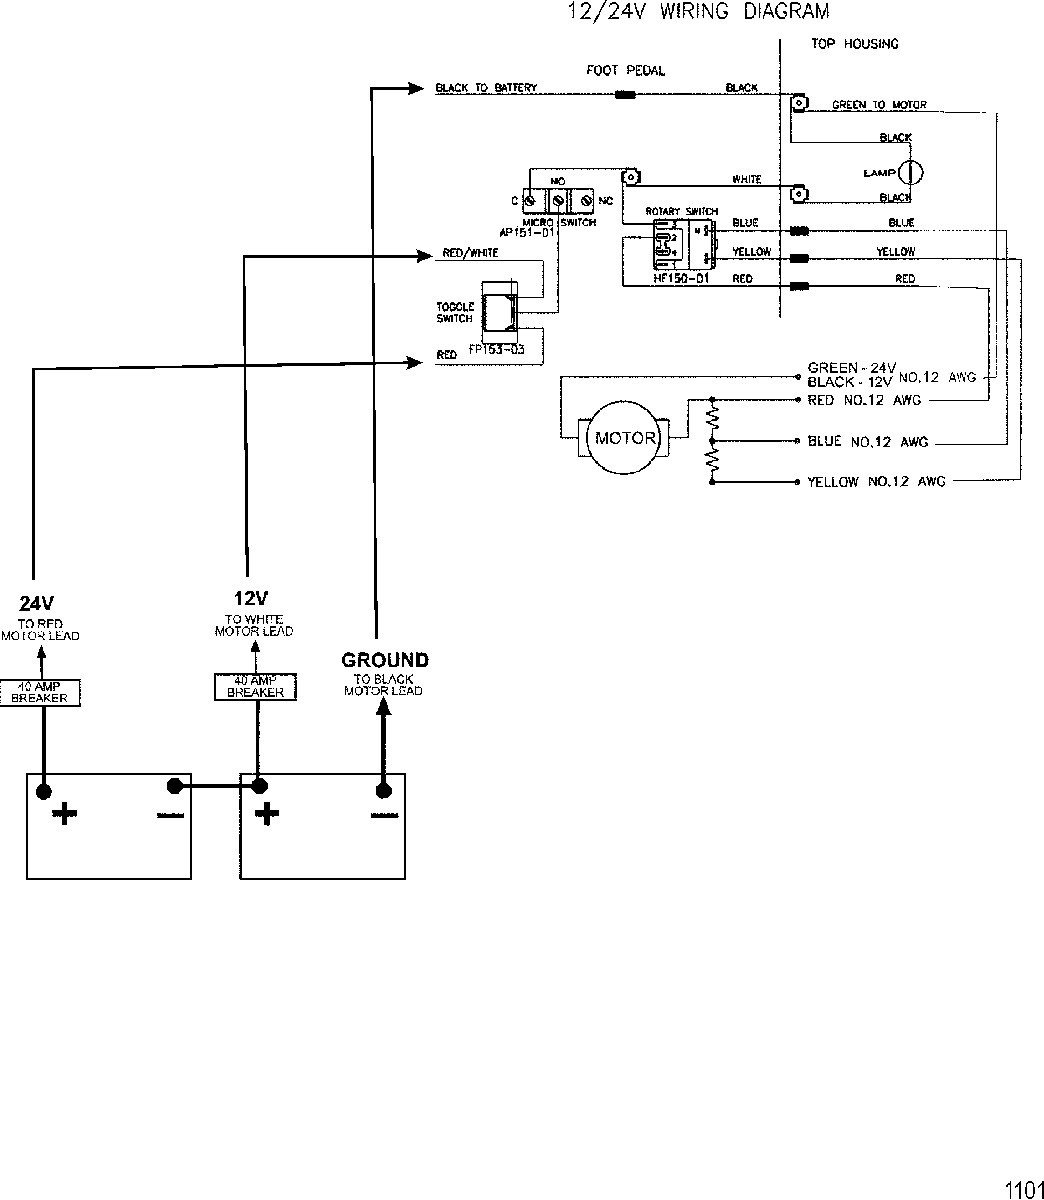 [DIAGRAM_09CH]  NH_6305] 24 Volt Trolling Motor Wiring Diagram On Motorguide 12 24 Trolling  Download Diagram | Johnson Trolling Motor Wiring Diagram |  | Weveq Rele Mohammedshrine Librar Wiring 101